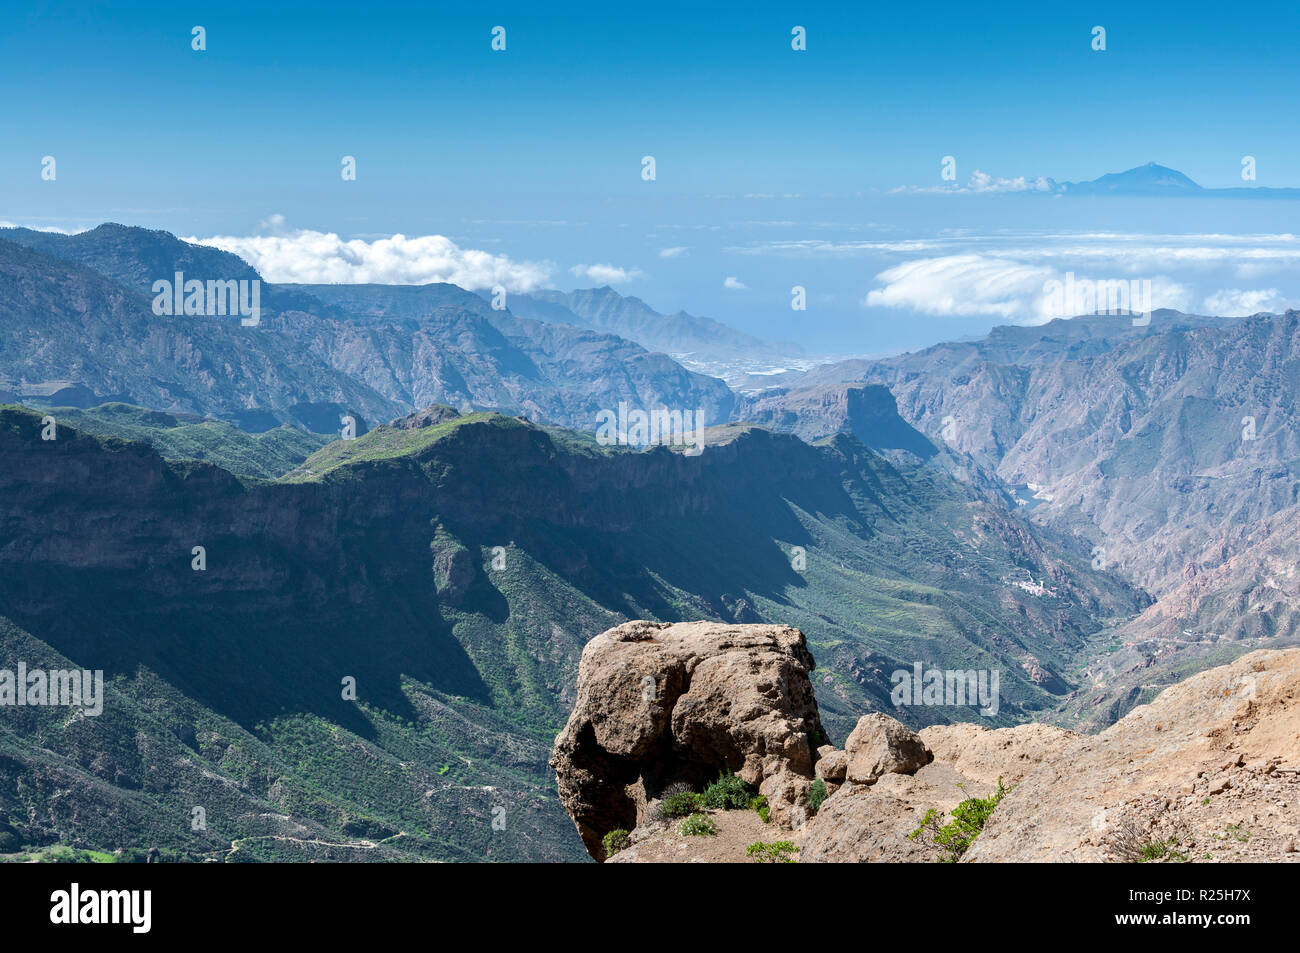 Views of the Mount Teide, in Tenerife Island, form the Nublo Rural Park, in the interior of the Gran Canaria Island, Canary Islands, Spain Stock Photo